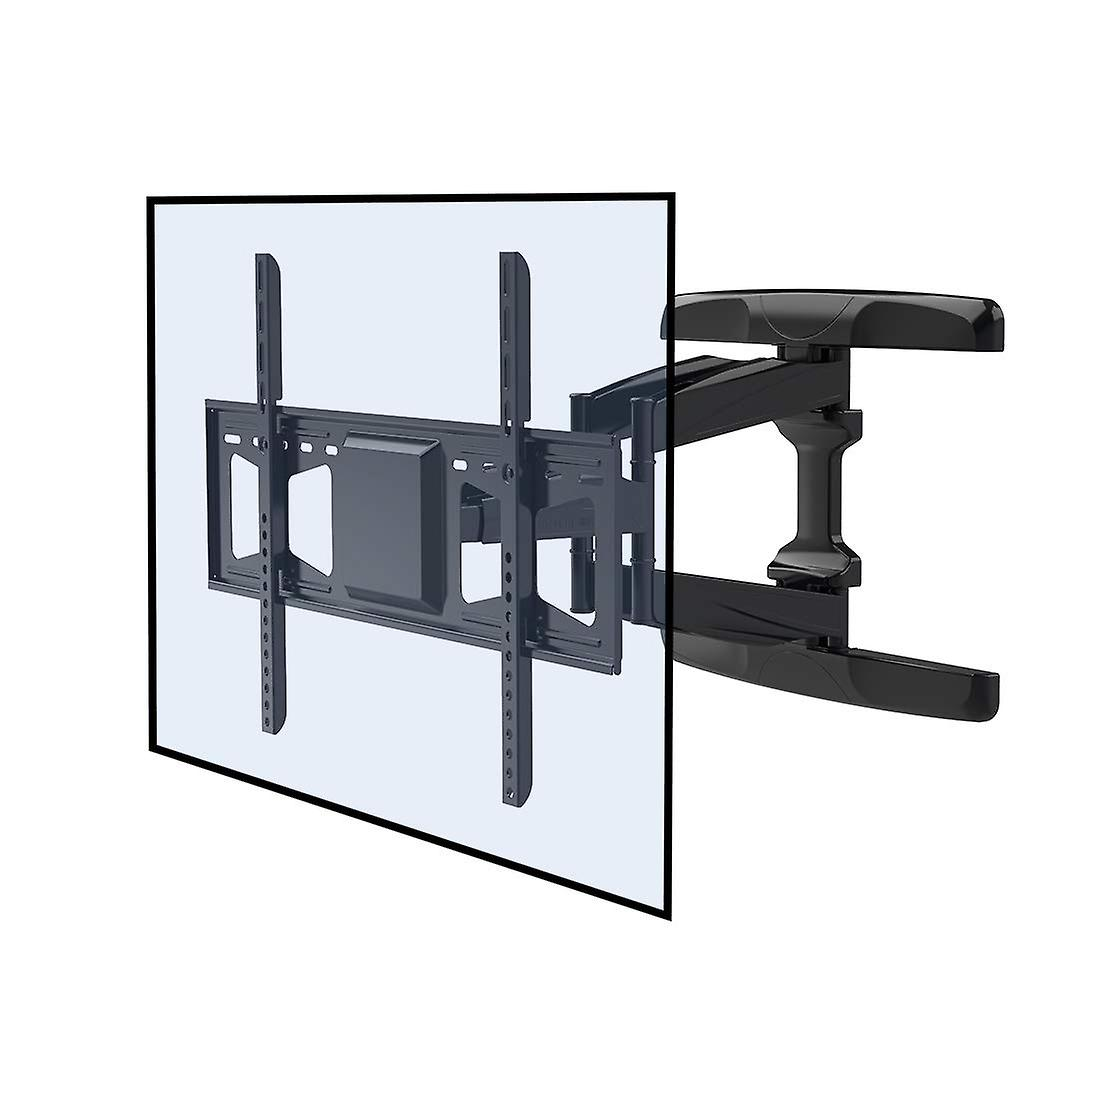 Fleximounts A29 Full Motion Swivel Tilt Articulating TV Wall Bracket